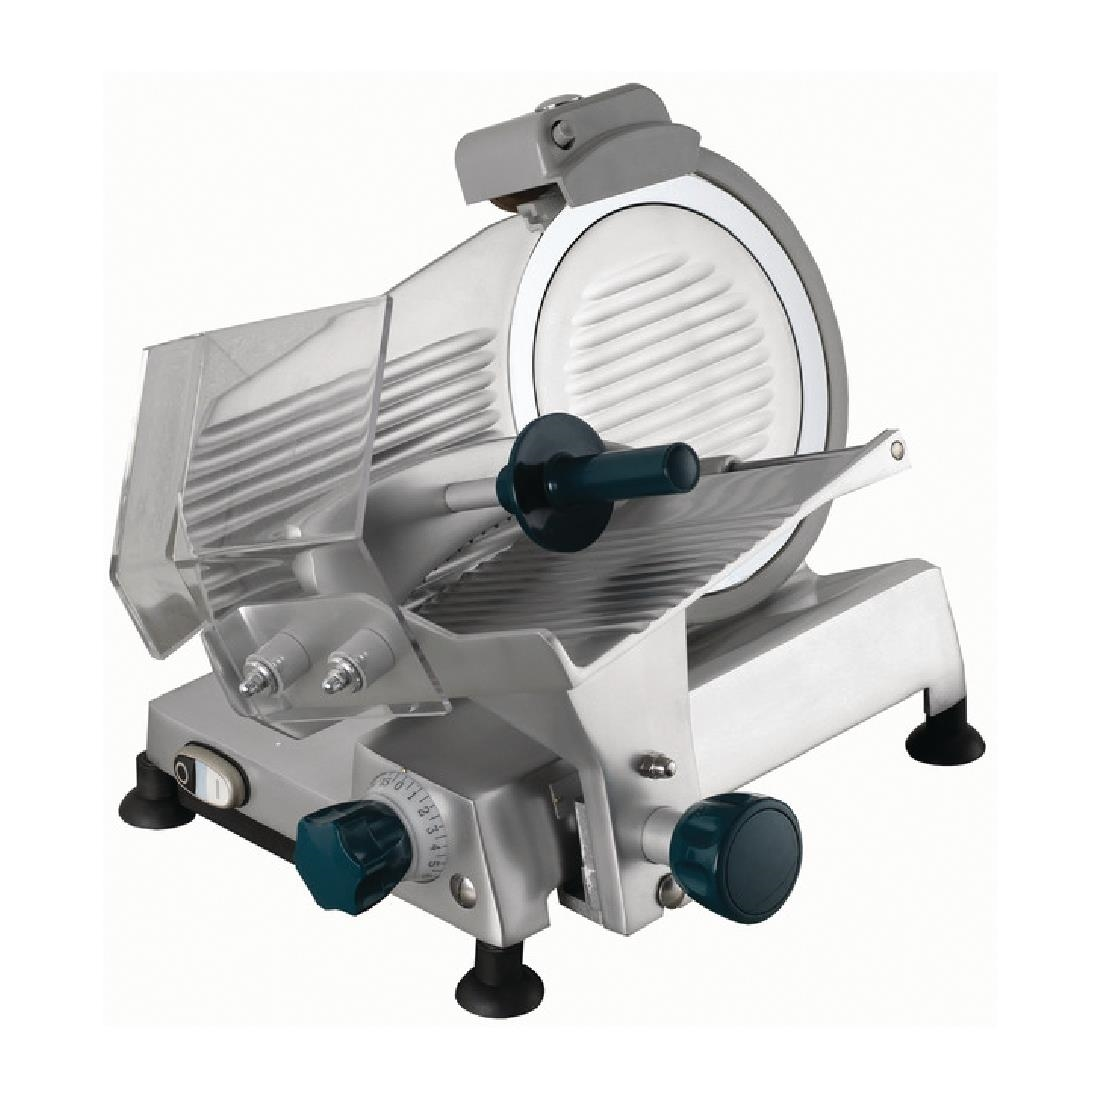 Hobart Food Slicer SL250